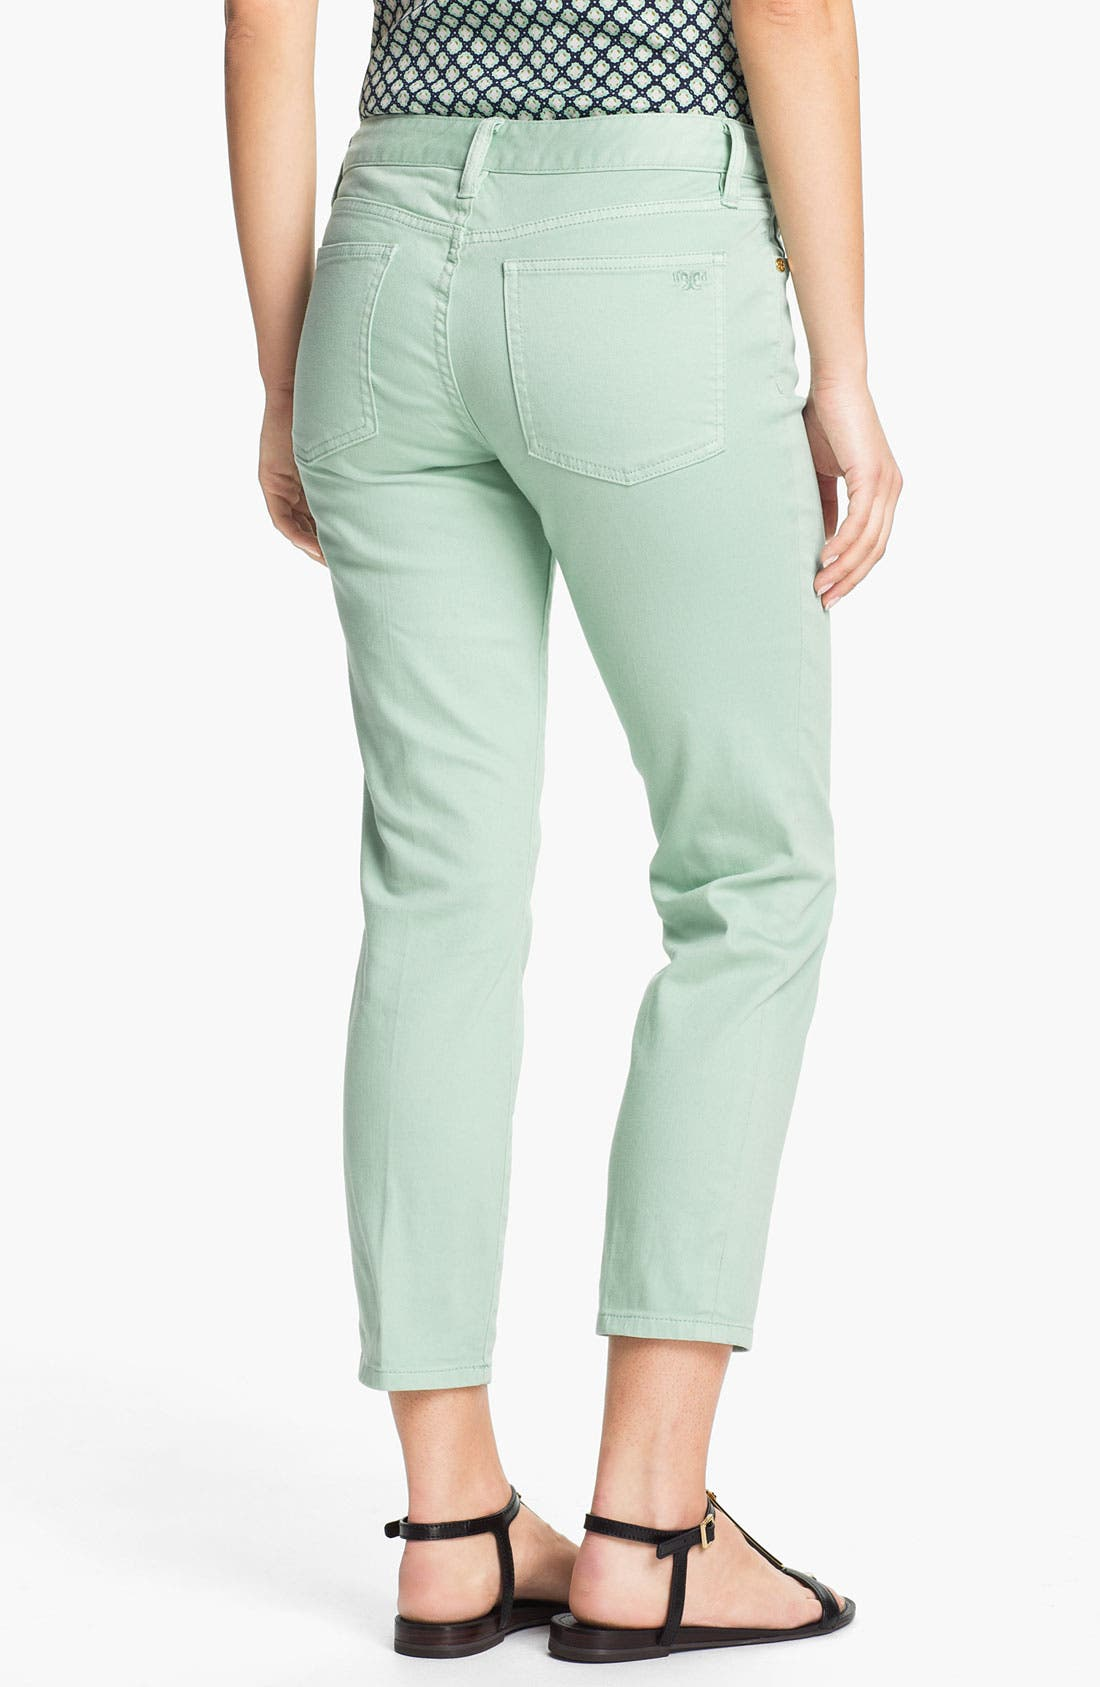 Alternate Image 2  - Tory Burch 'Alexa' Crop Skinny Stretch Jeans (Seaglass)